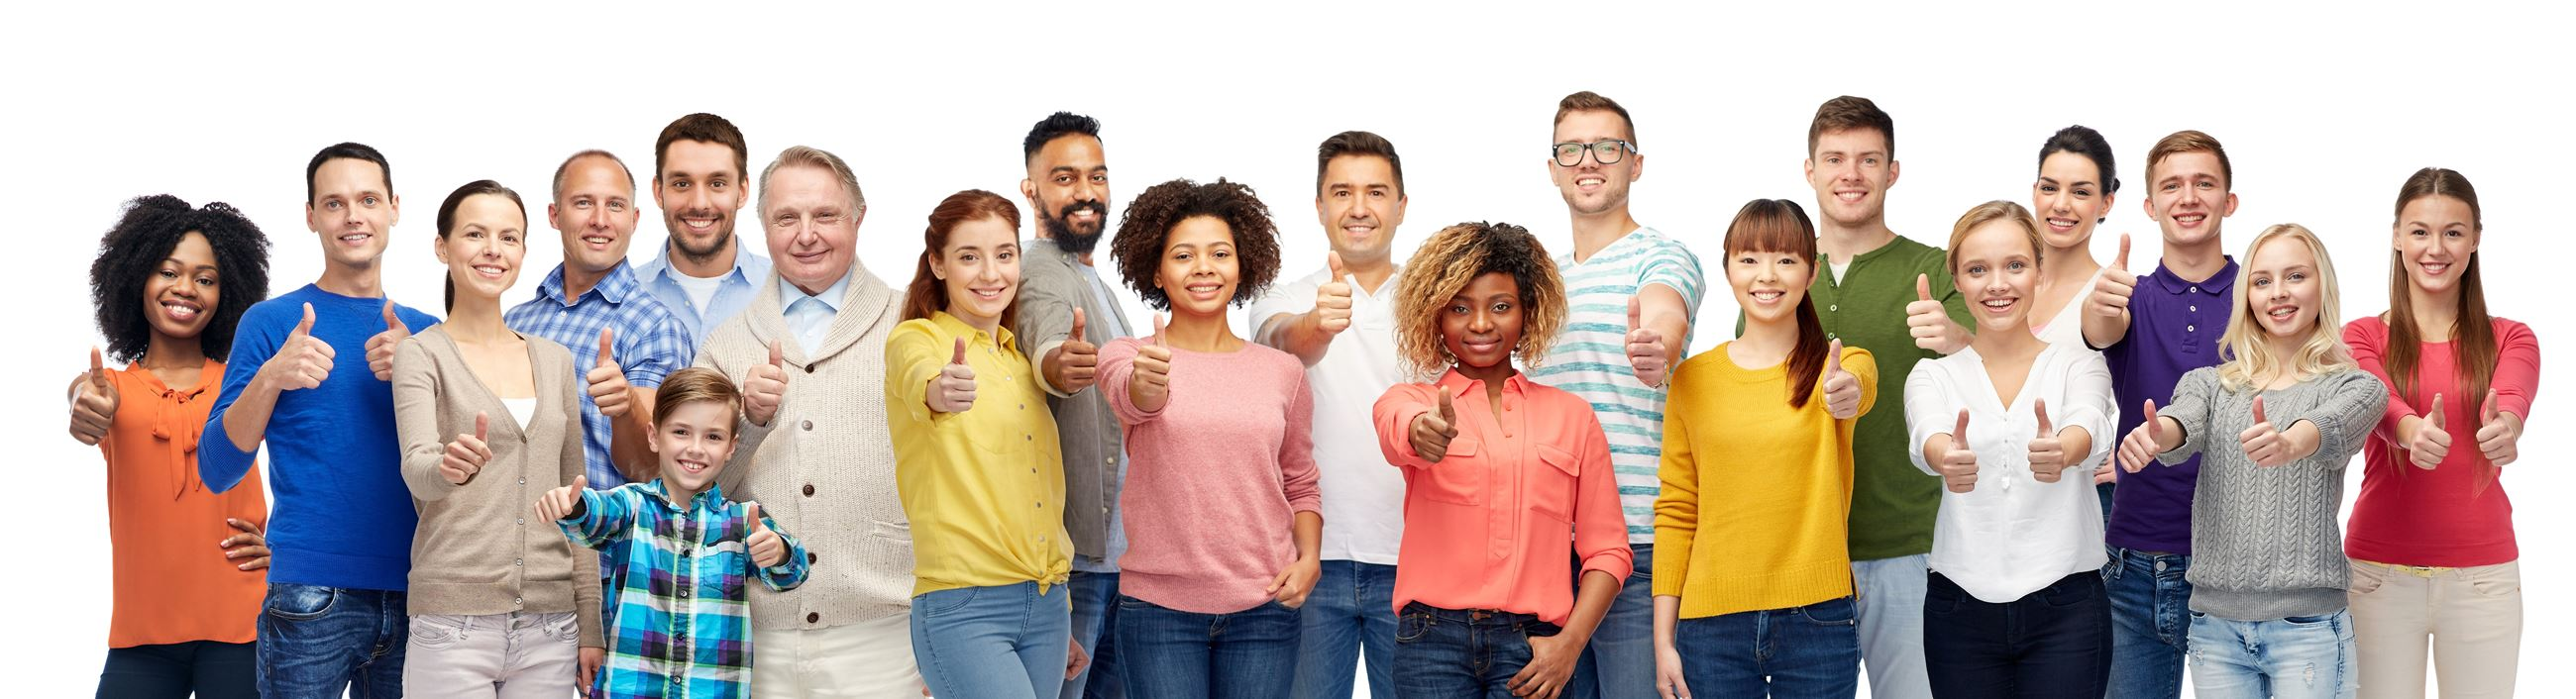 bigstock-people-diversity-and-internat-264402961